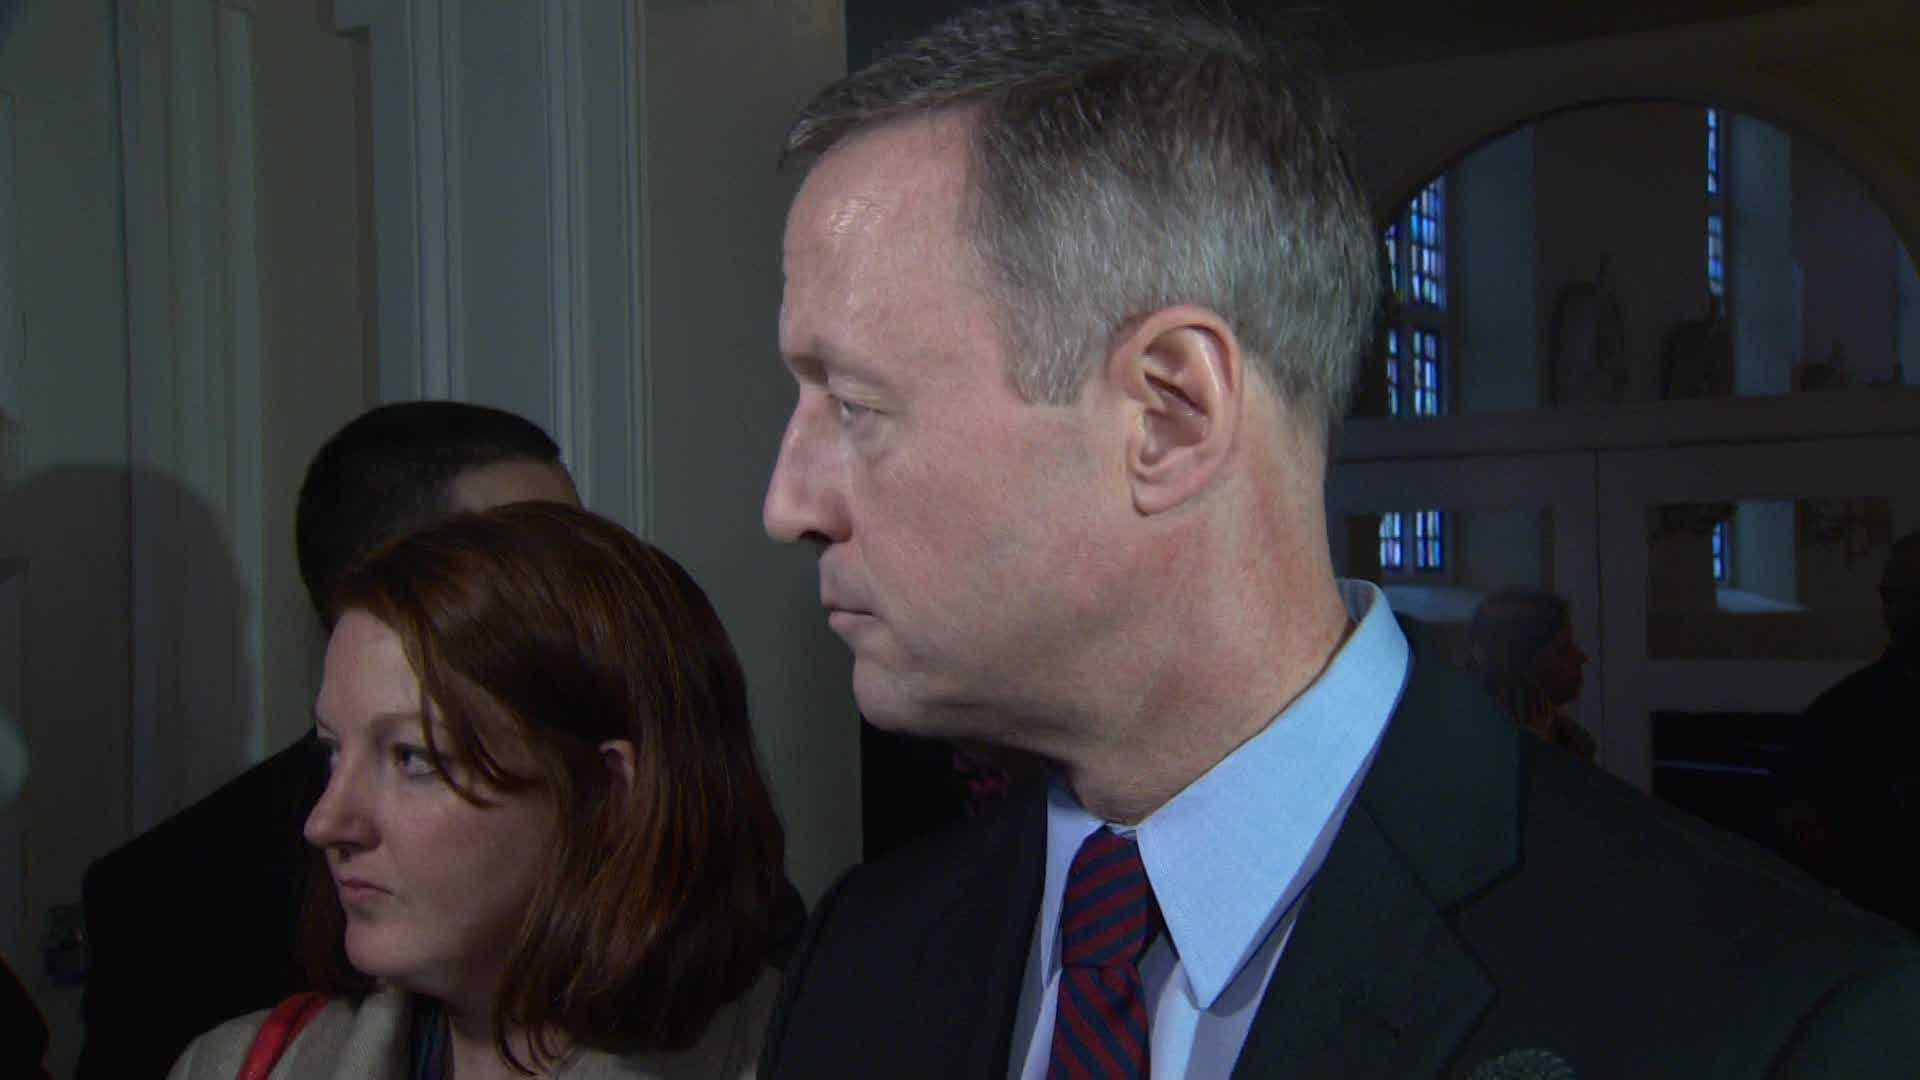 """We will have a need for a new leader once President Obama's term is over, so I've been preparing in terms of the thought work, the policy work and the ground work necessary to offer a better direction for our country,"" Gov. Martin O'Malley said Monday."